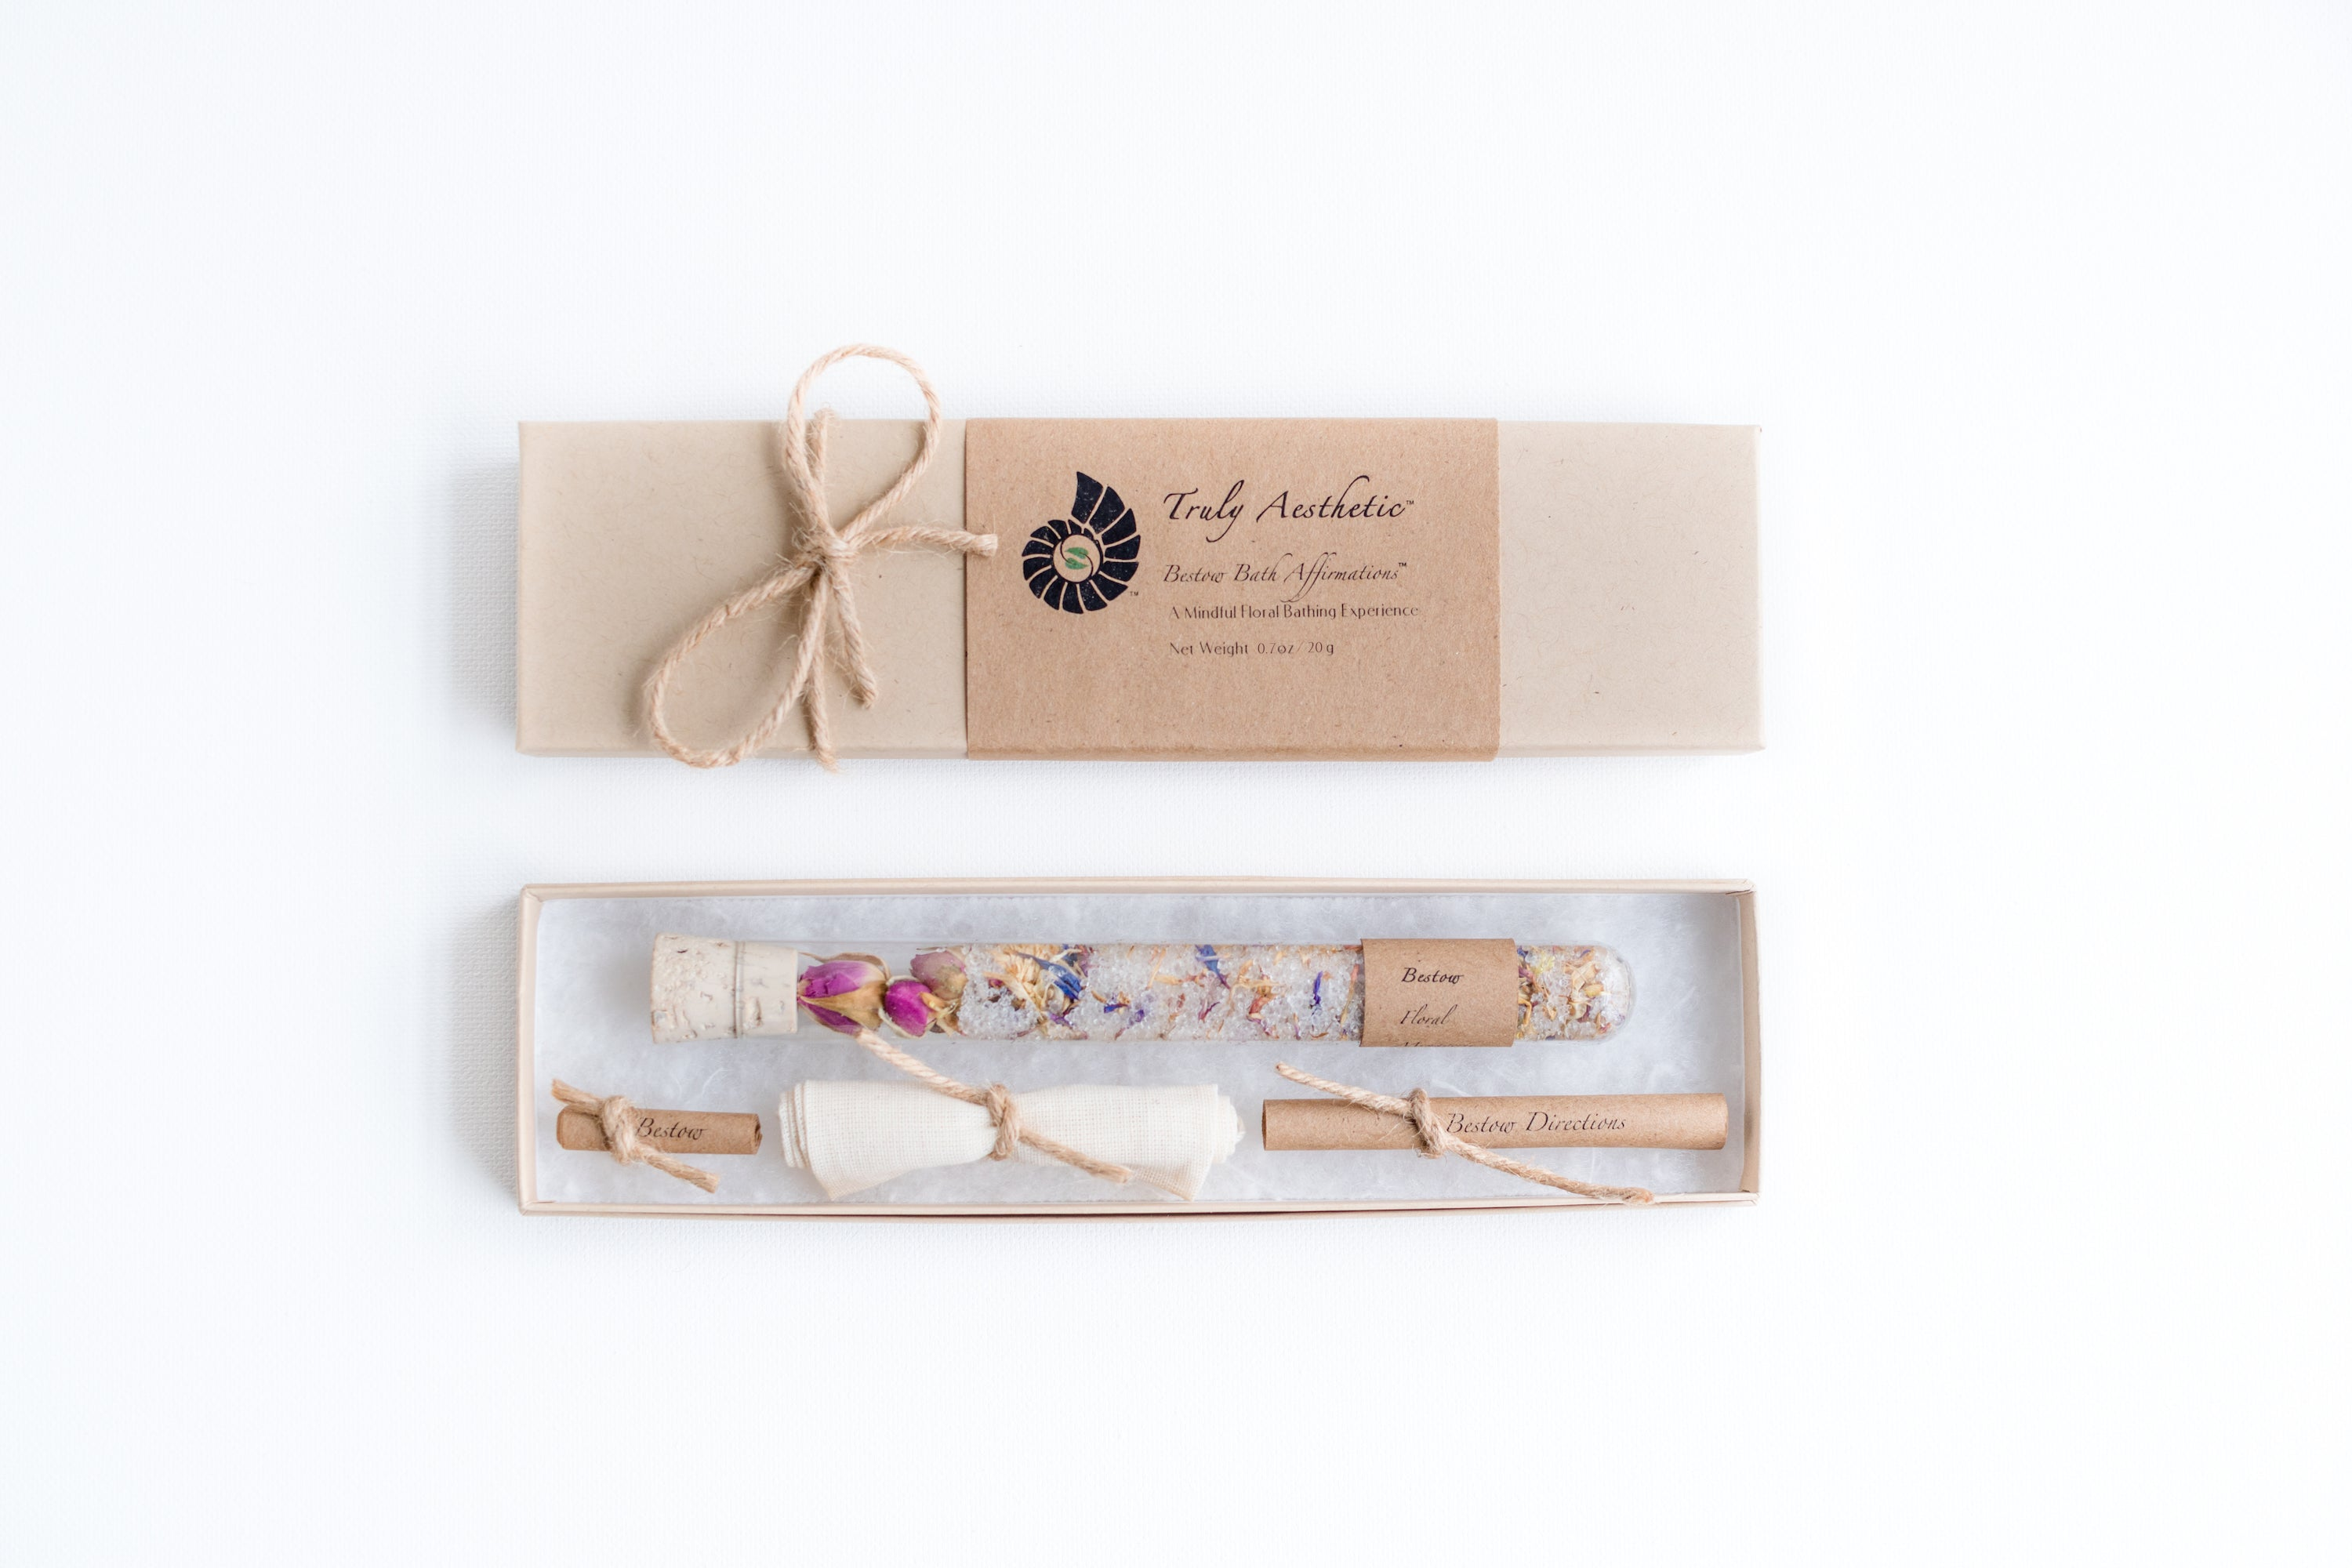 Truly Aesthetic Bestow Floral Petite Bath Affirmations Bath Salts Gift Box Set Packaging